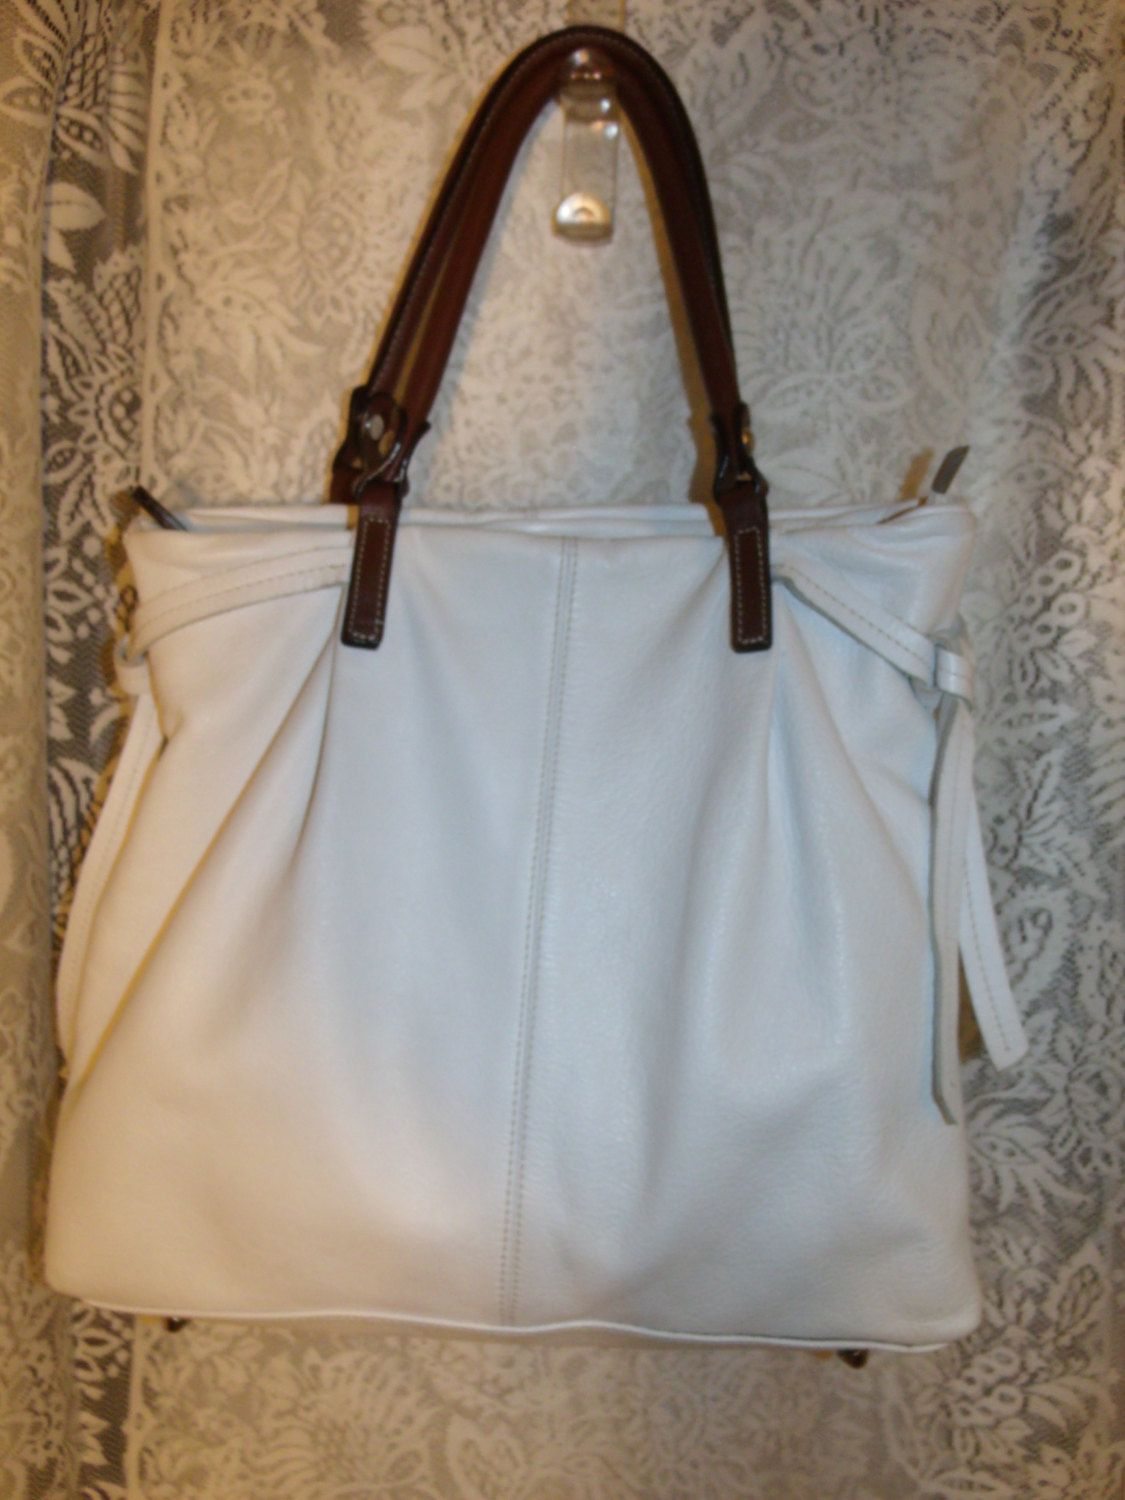 Innue Italian Leather White Tote Styled Purse Shoulder Handbag Vintage By Thingstakewings On Etsy